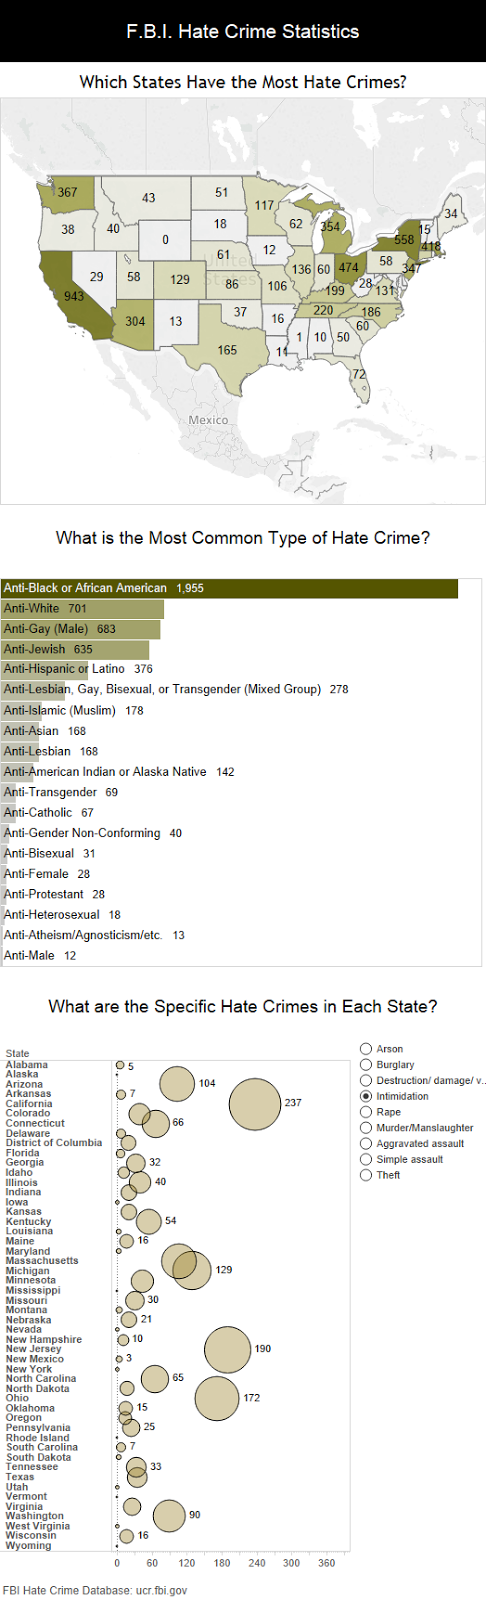 Which states have the most hate crimes?